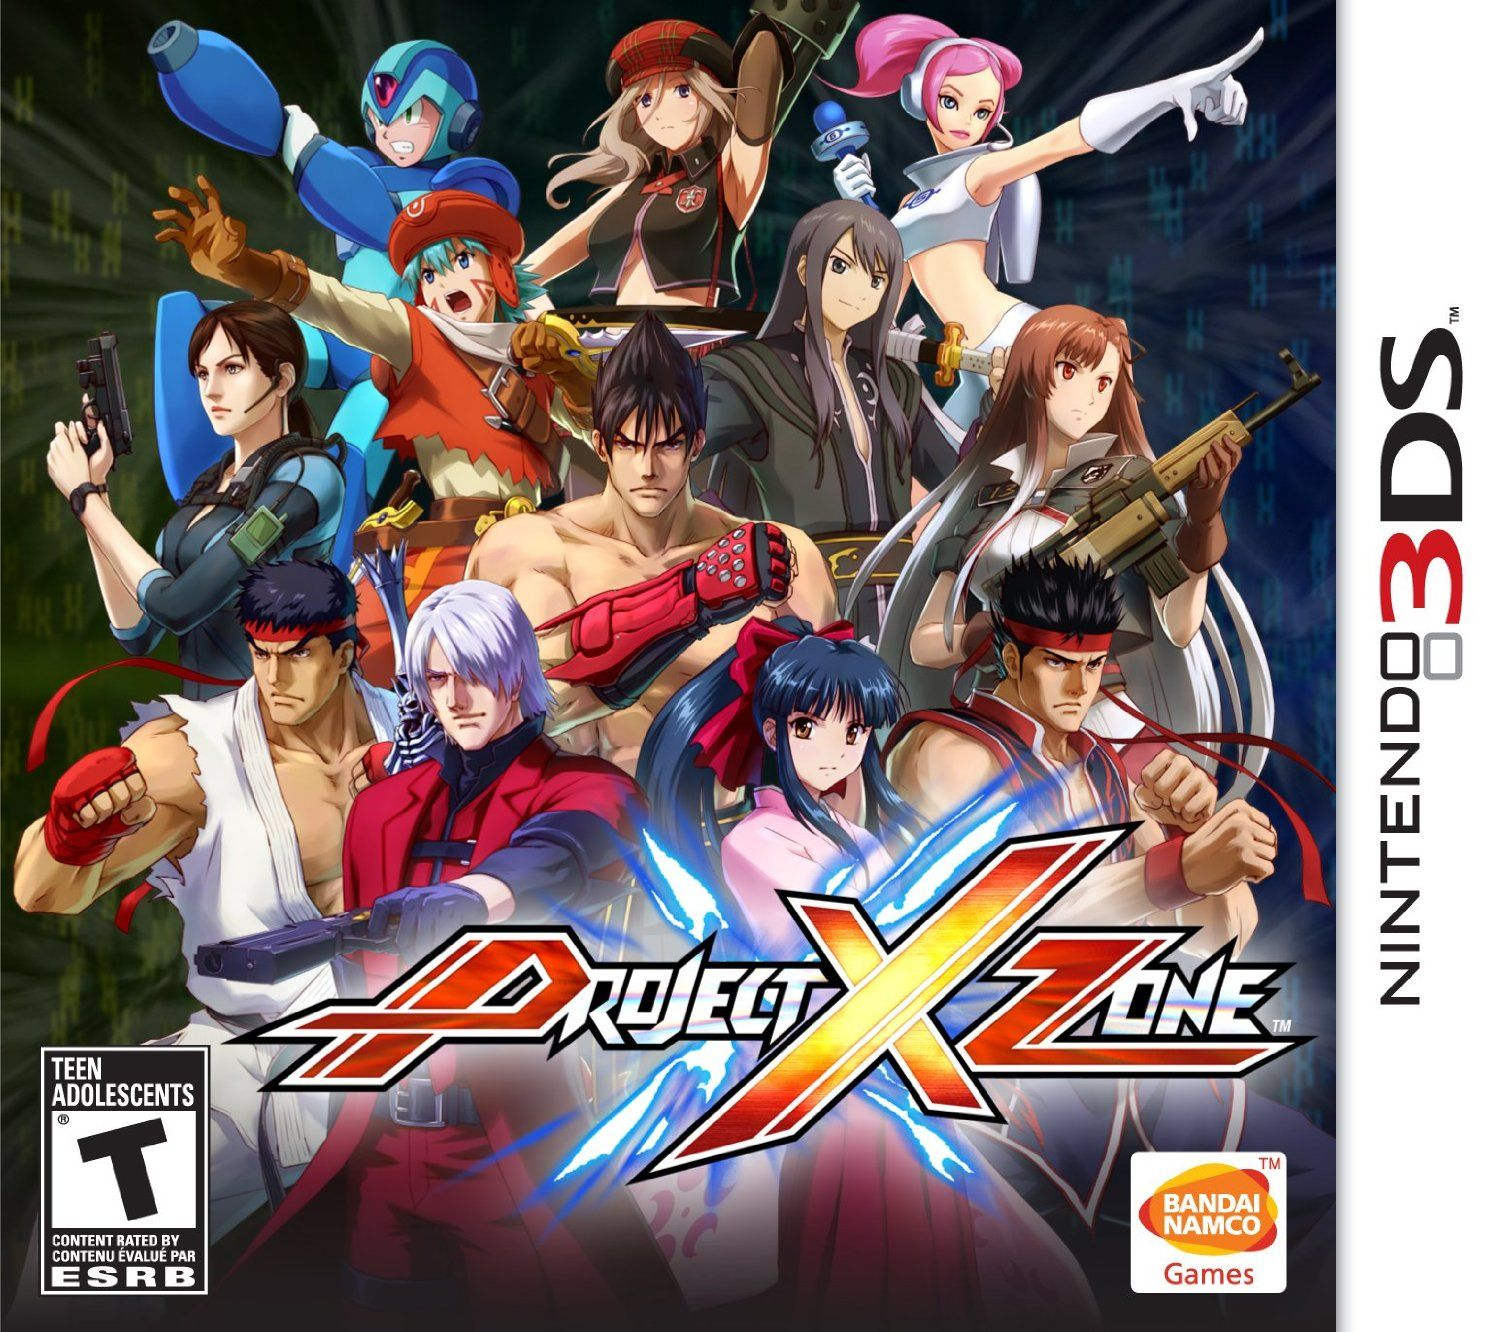 Project X Zone Ost Us Gamerip Mp3 Download Project X Zone Ost Us